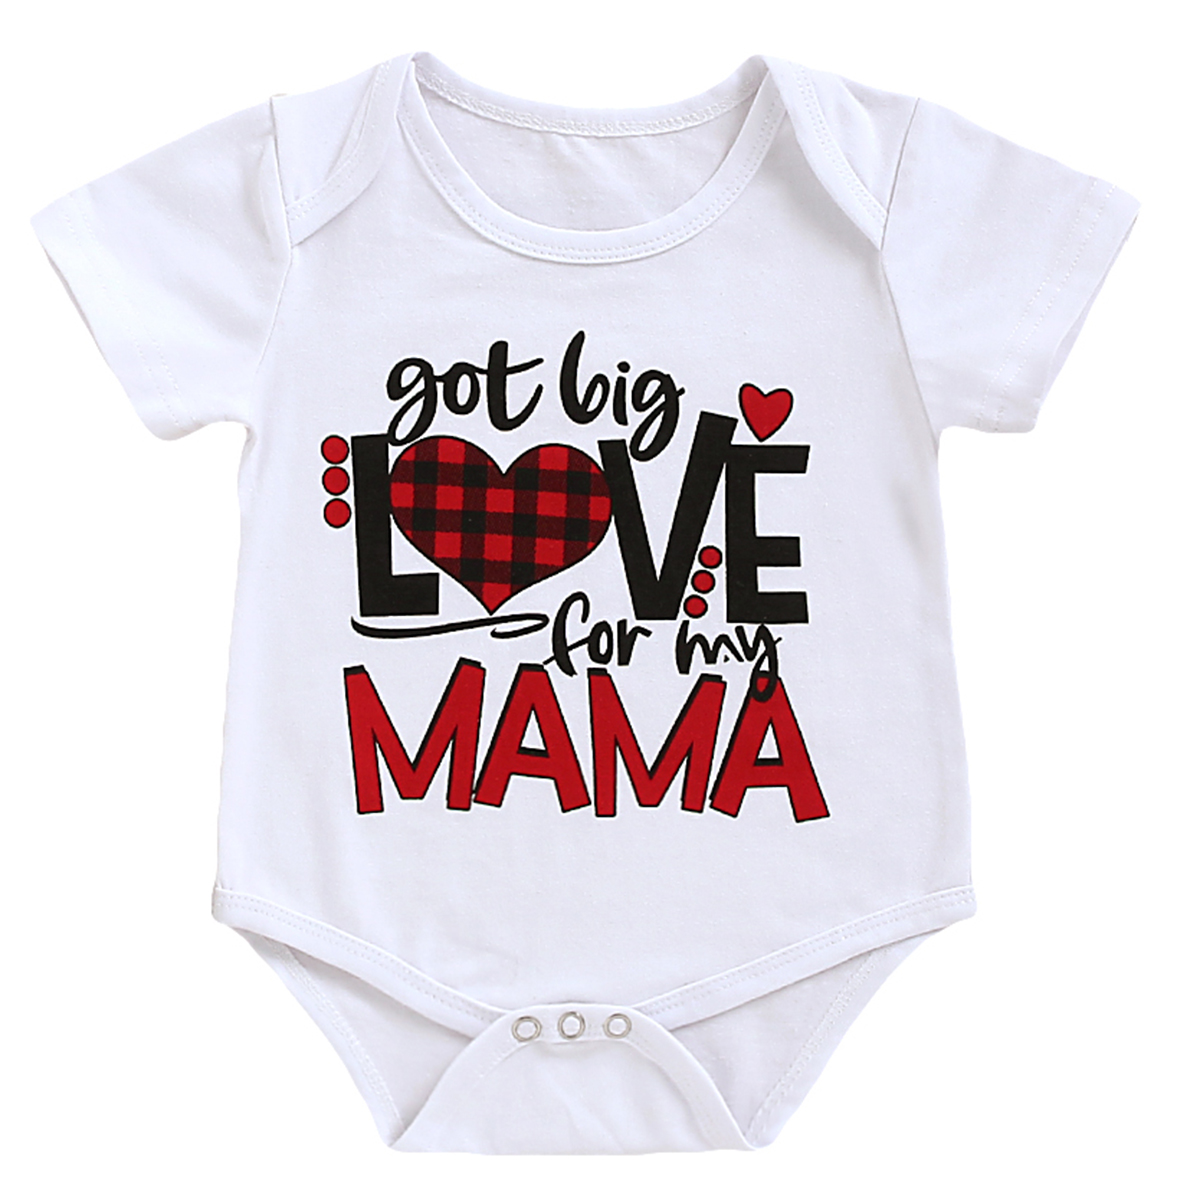 Got big love for my Mama print Baby Rompers Summer Baby Clothing Romper Infant Newborn Baby Boy Girl Clothes Jumpsuit image